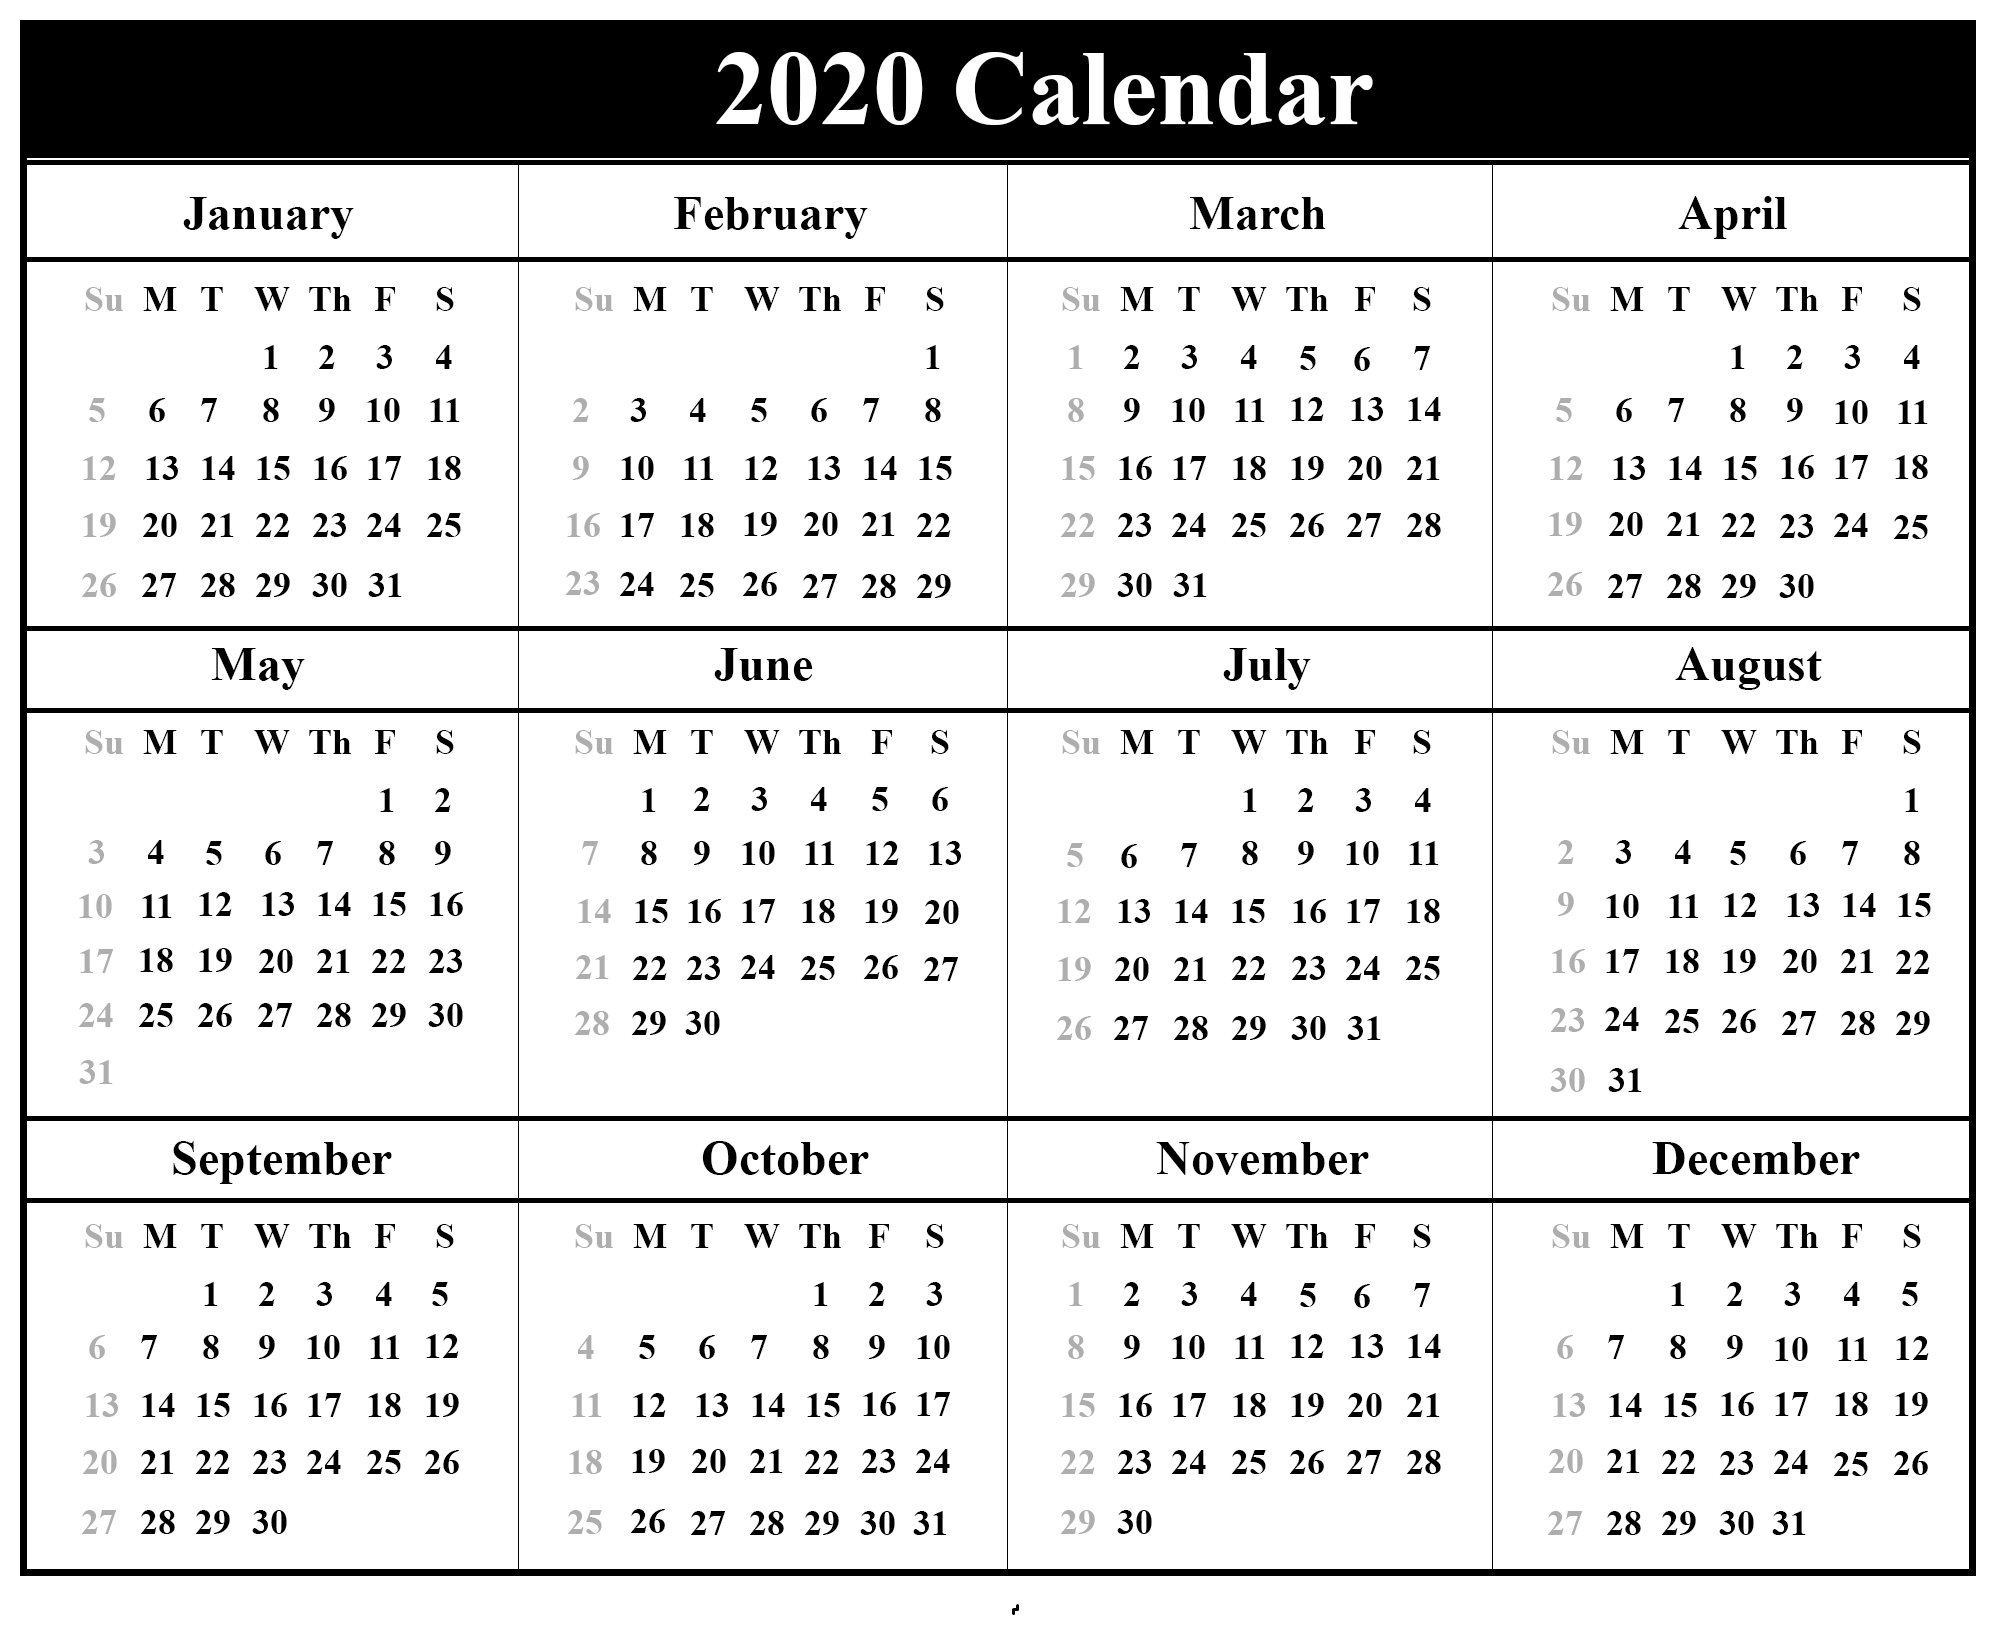 Yearly 2020 Calendar For Children